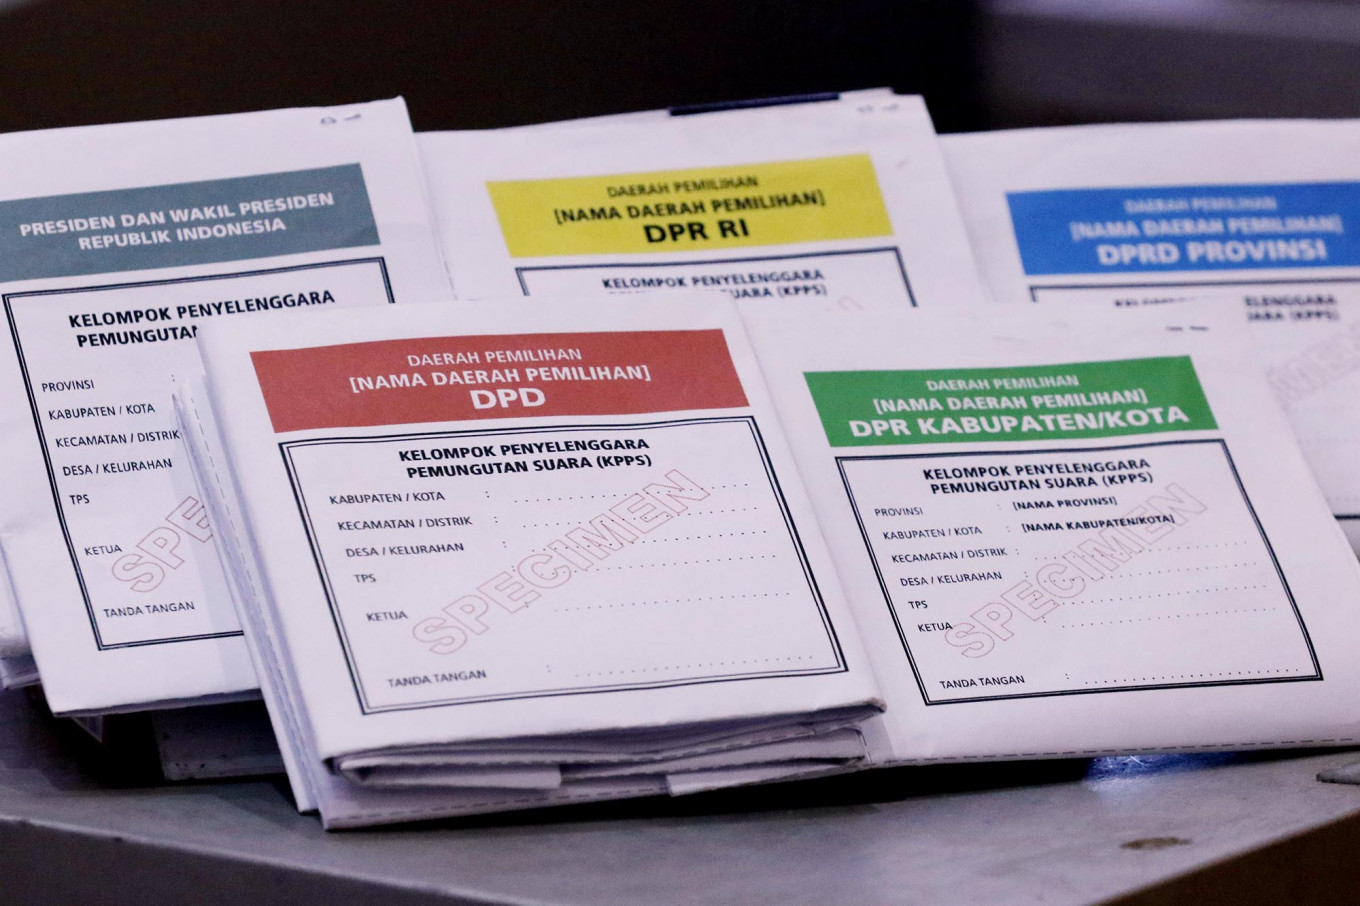 Samples of five-colored ballot papers are being displayed at the KPU office. JP/Dhoni Setiawan